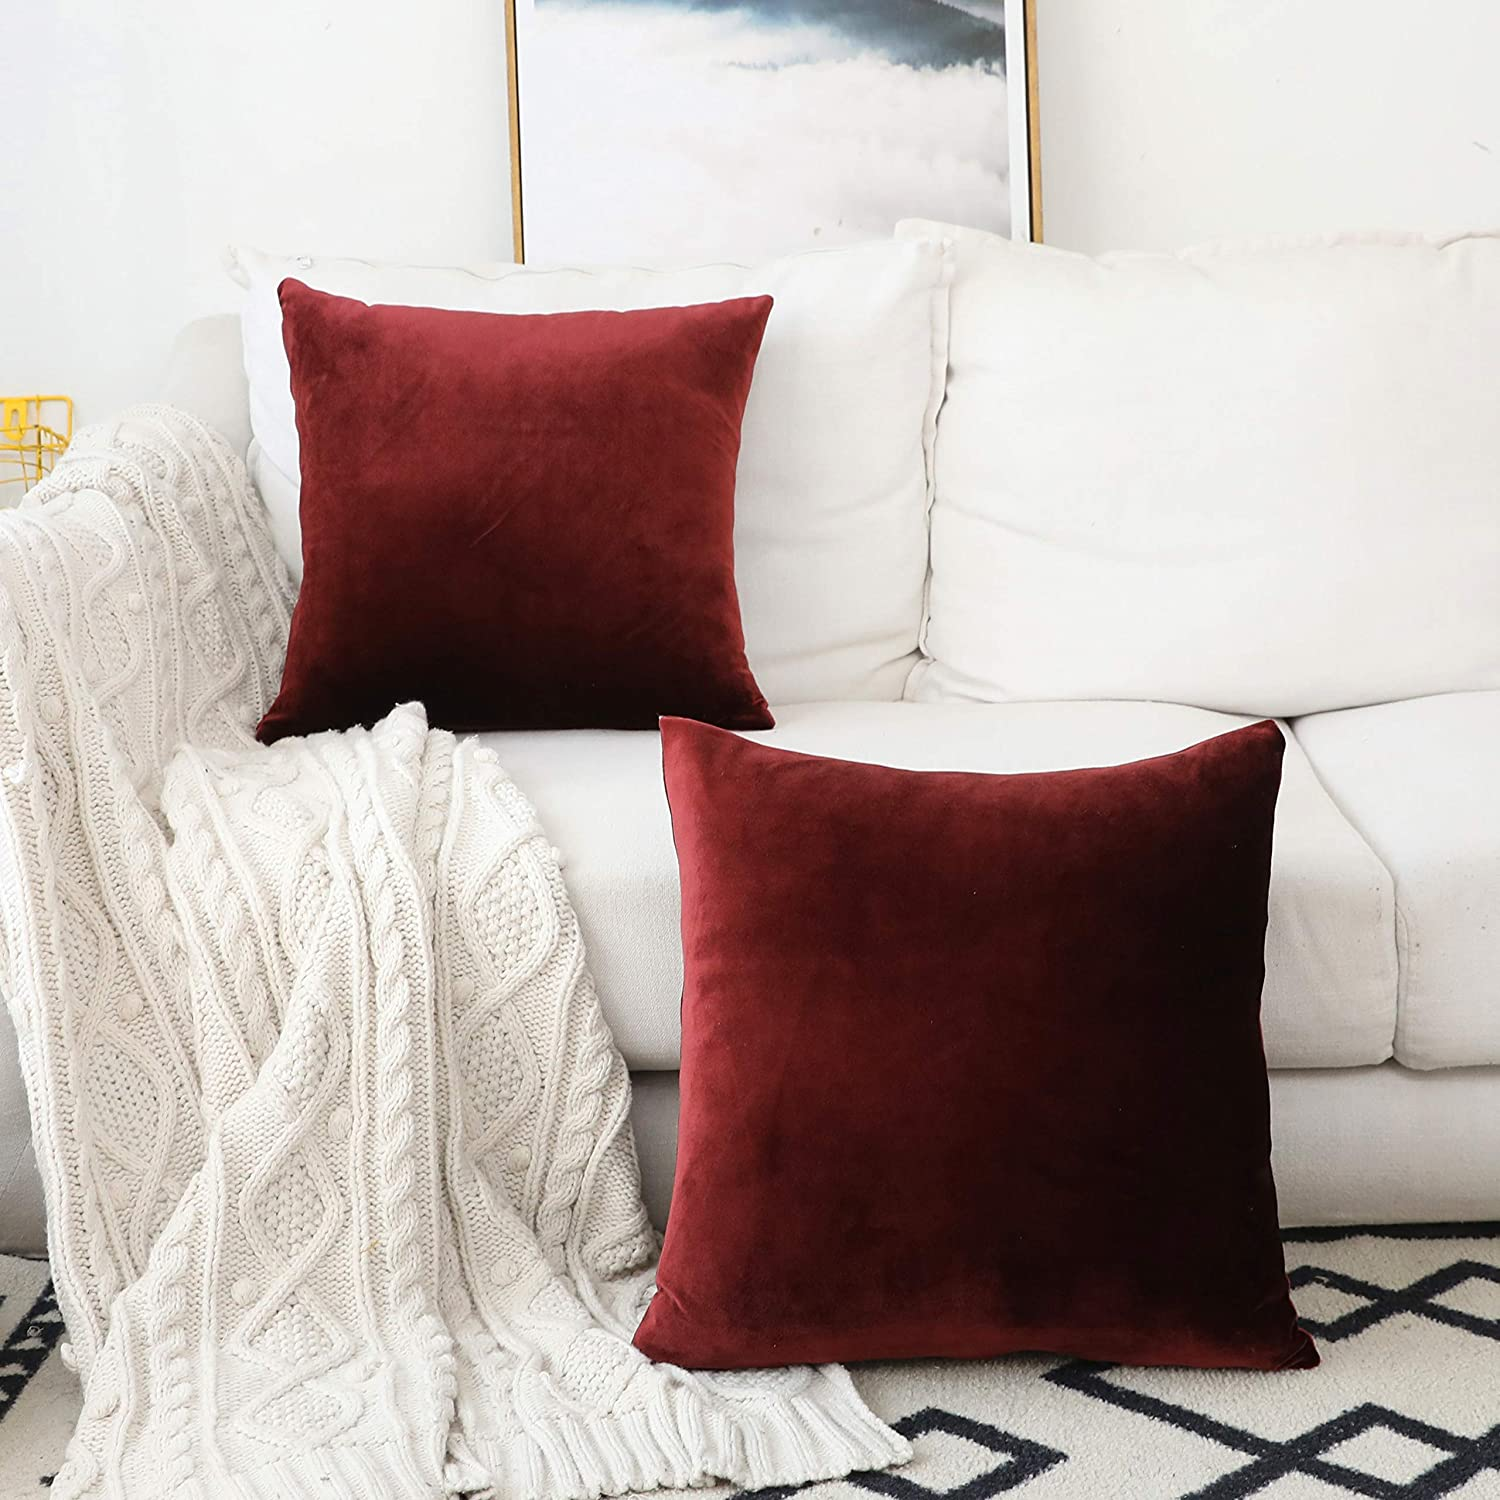 Home Brilliant Red Throw Pillow Covers Christmas Decorative Velvet Pillowcases for Sofa Chiar Couch Holiday Decoration, 18 x 18 inch(45cm), Set of 2, Brick Red